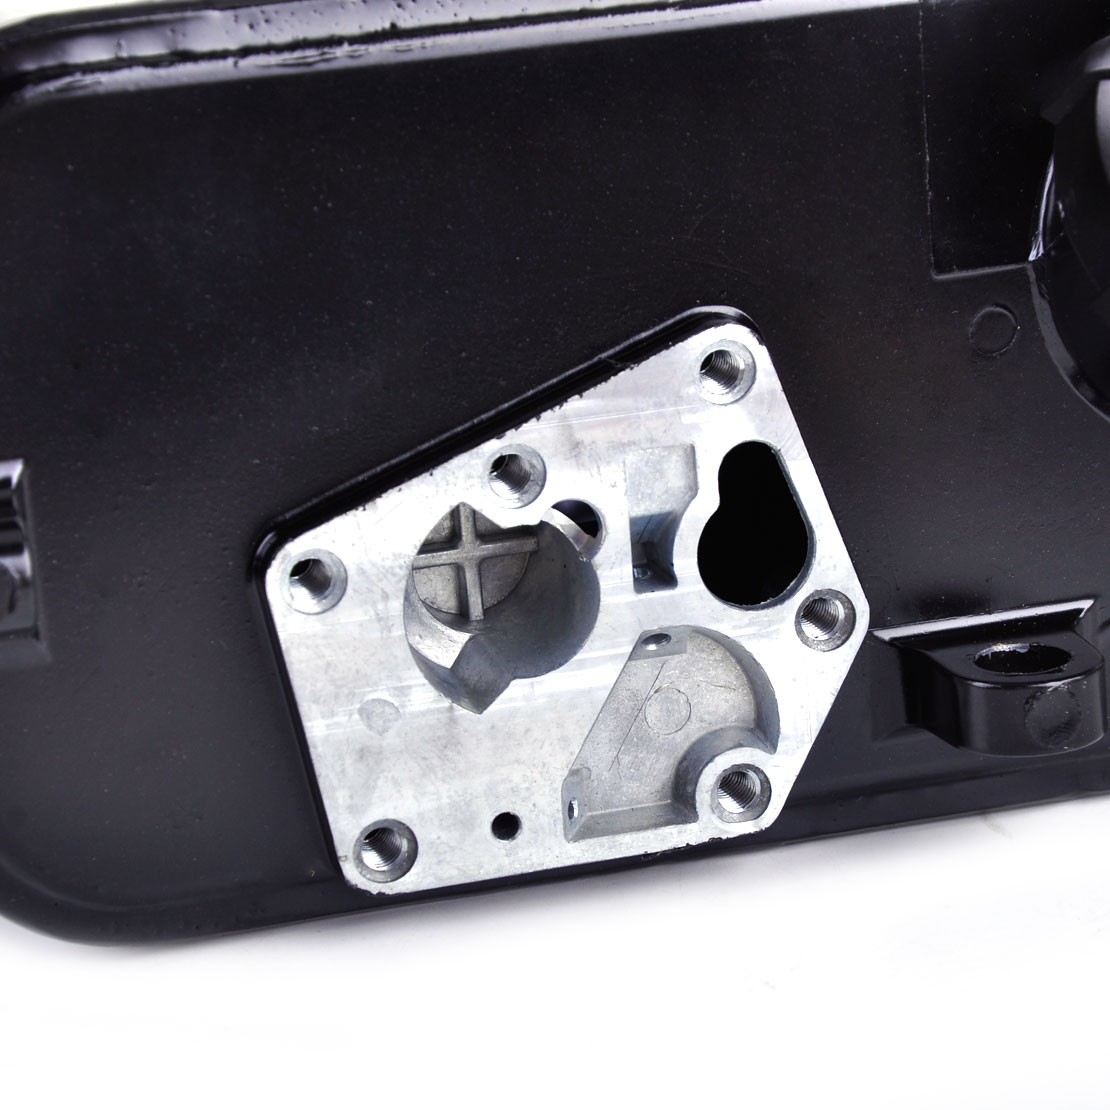 Tools : LETAOSK New Fuel Gas Tank fit for Briggs  amp  Stratton 494406 498809A 498809 Engine MowerAccessories